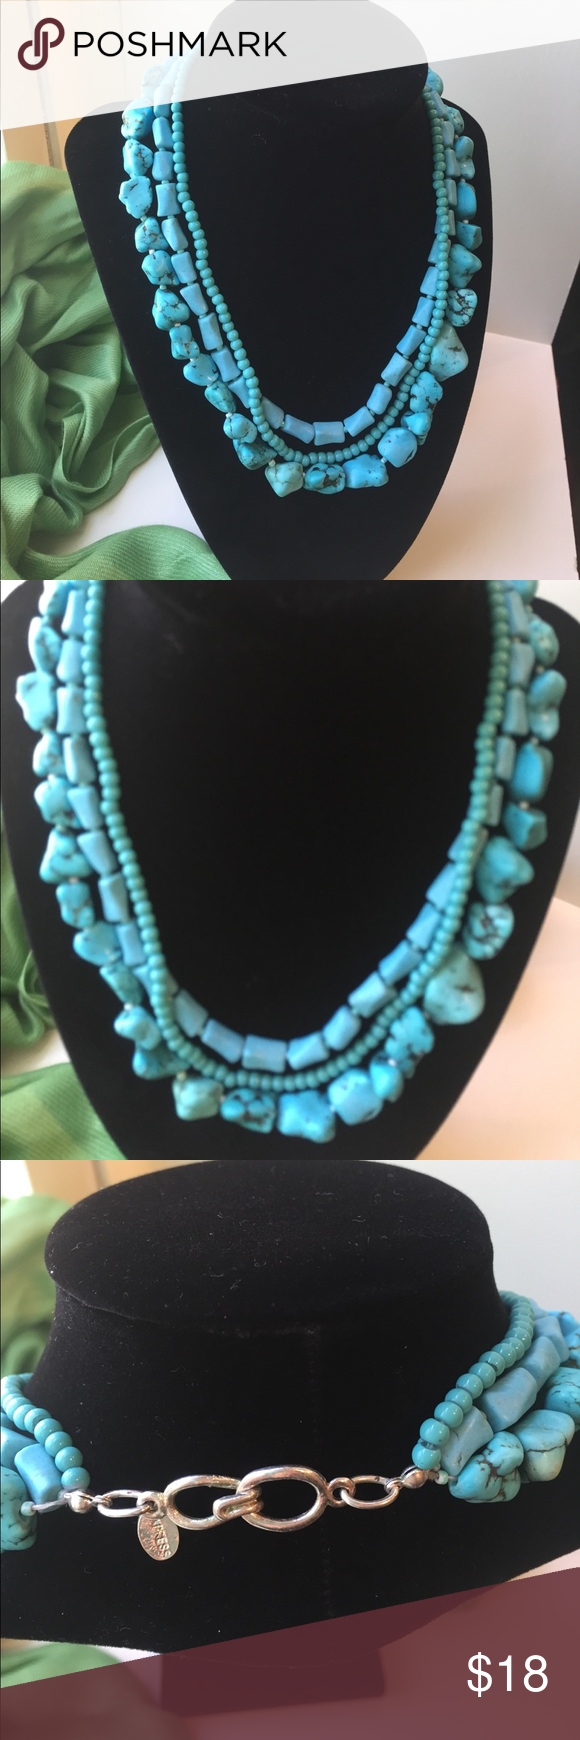 "EXPRESS TURQUOISE NECKLACE EUC • EXPRESS TURQUOISE NECKLACE • 3 STRANDS OF DIFFERENT SHAPES OF TURQUOISE • NECKLACE DROP MEASURES 8.5"" • Express Jewelry Necklaces"